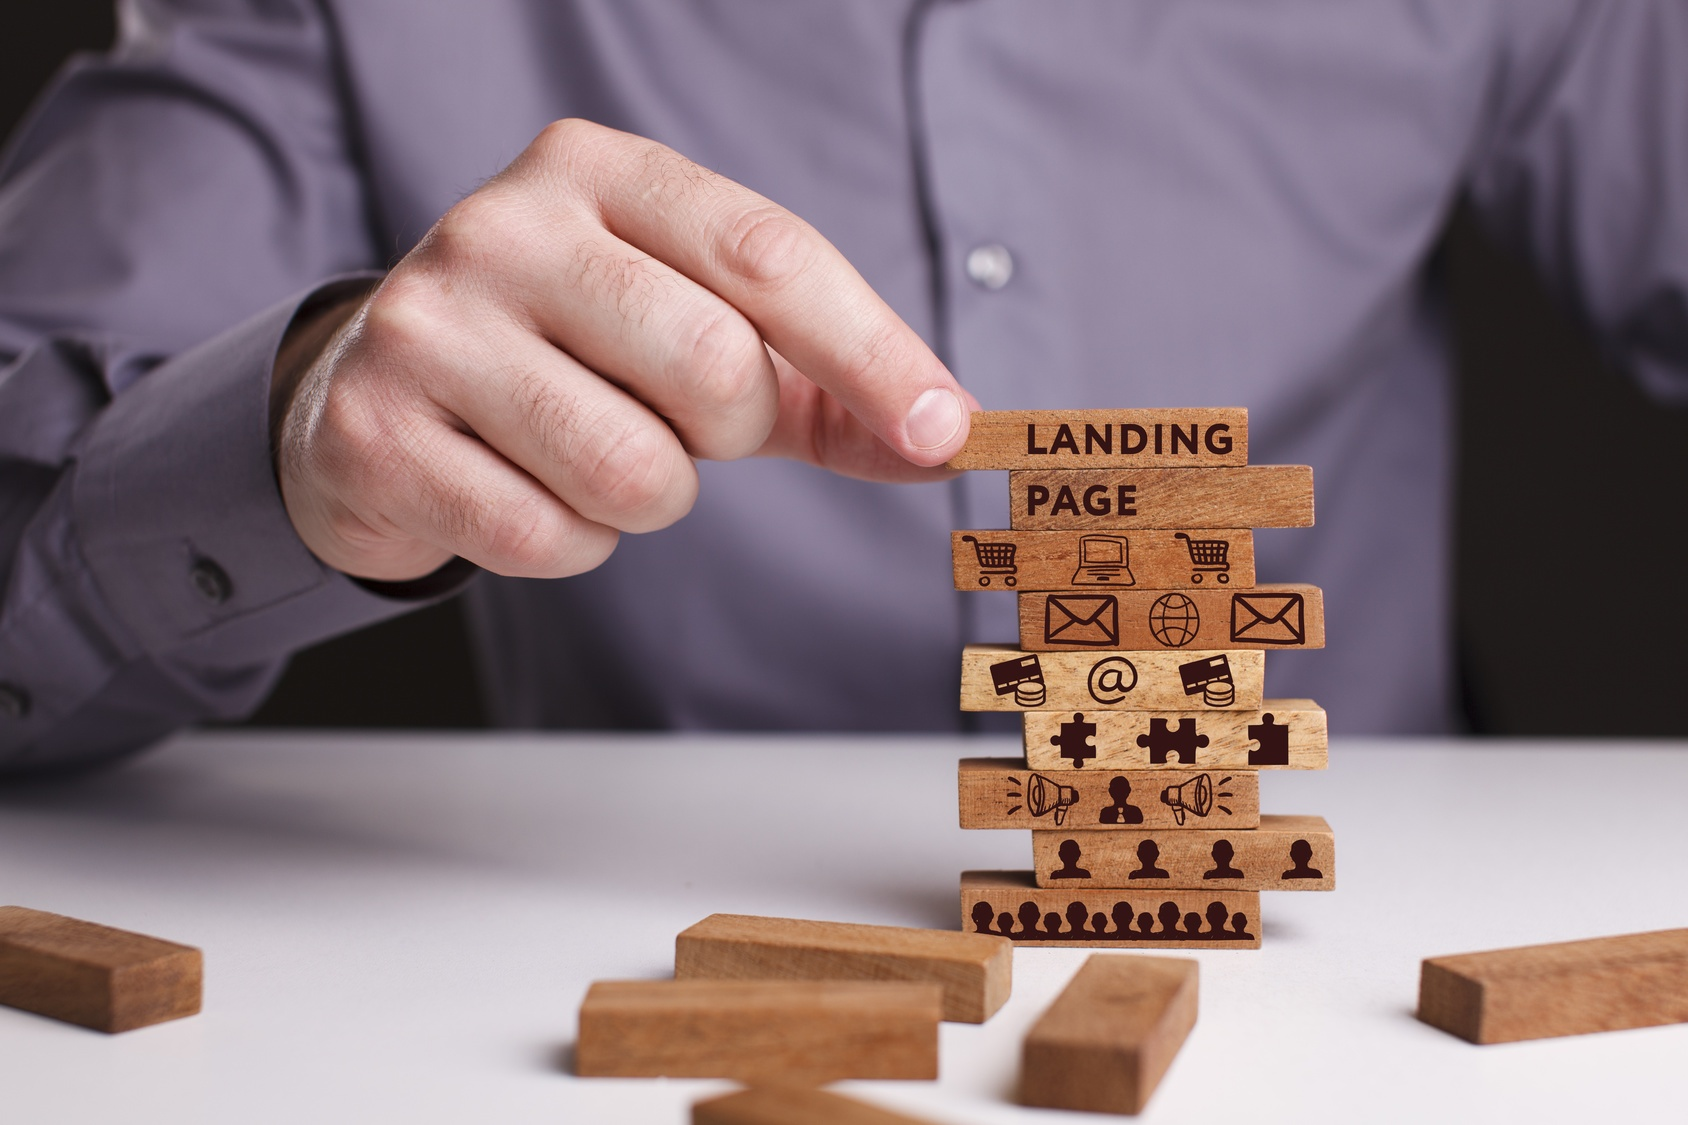 Must-Have Ingredients For Landing Page Success